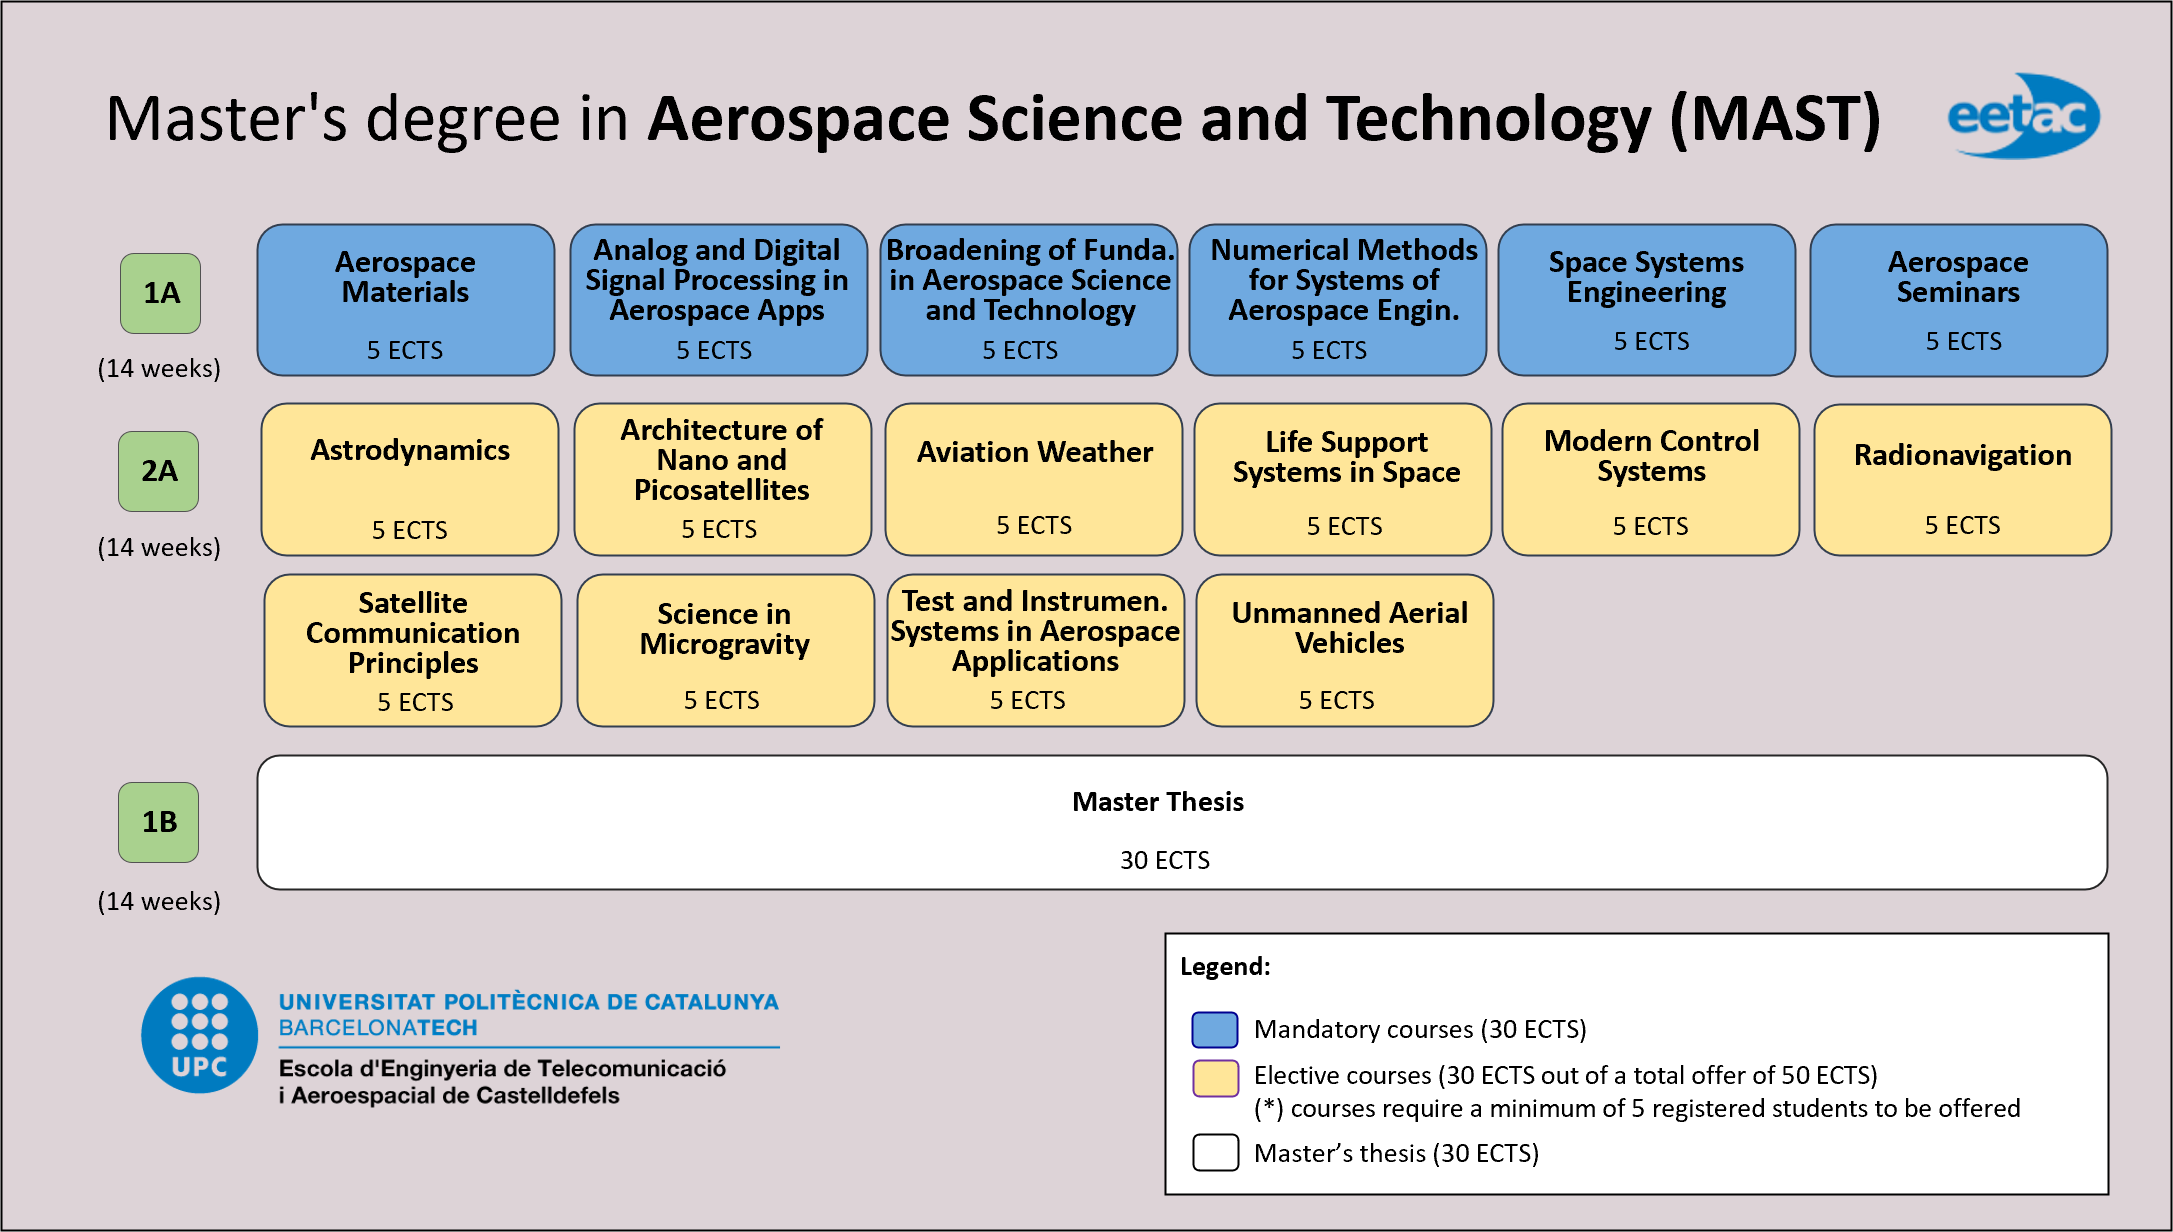 Master's degree in Aerospace Science and Technology